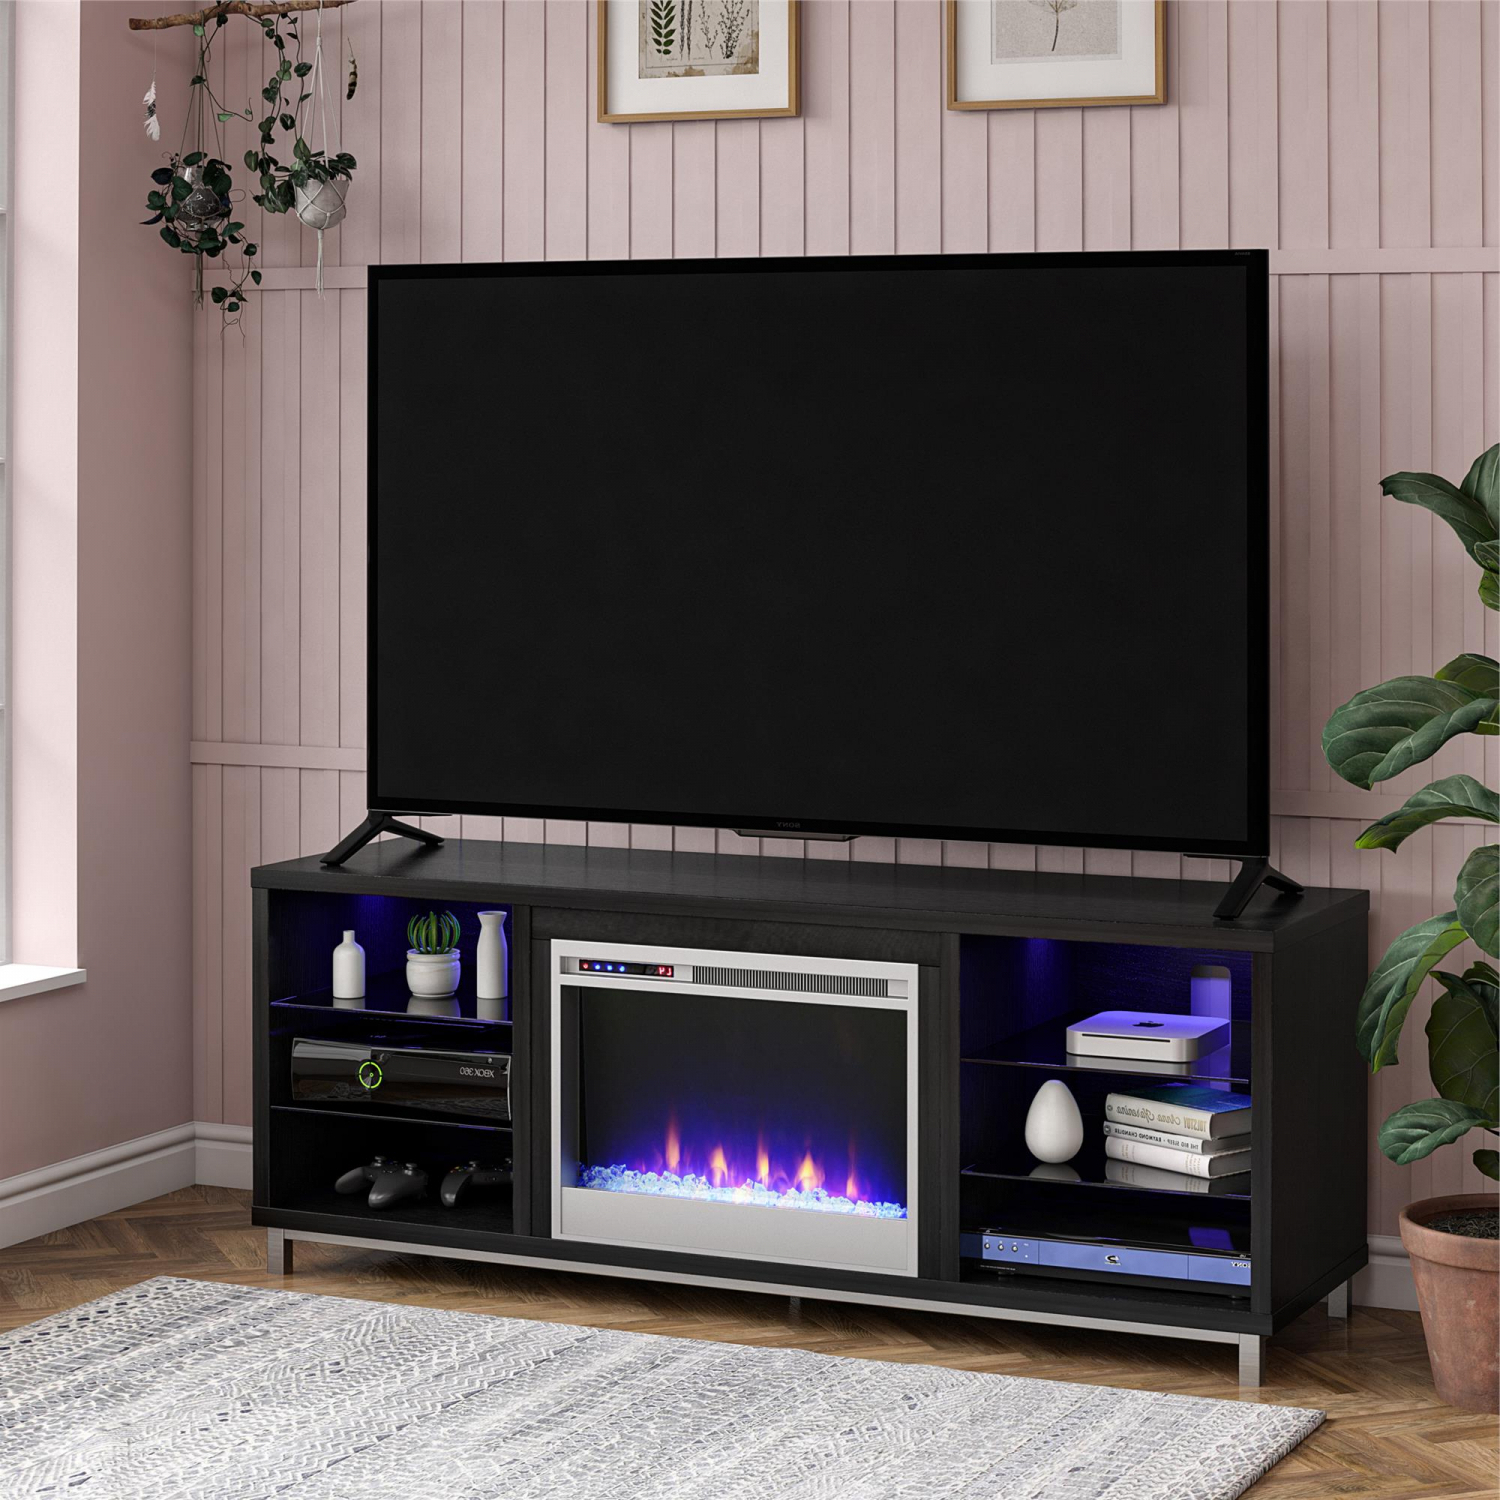 Most Recent Electric Lumina Fireplace Tv Stand For Tvs Up To 70 Wide Regarding Carbon Wide Tv Stands (View 4 of 10)